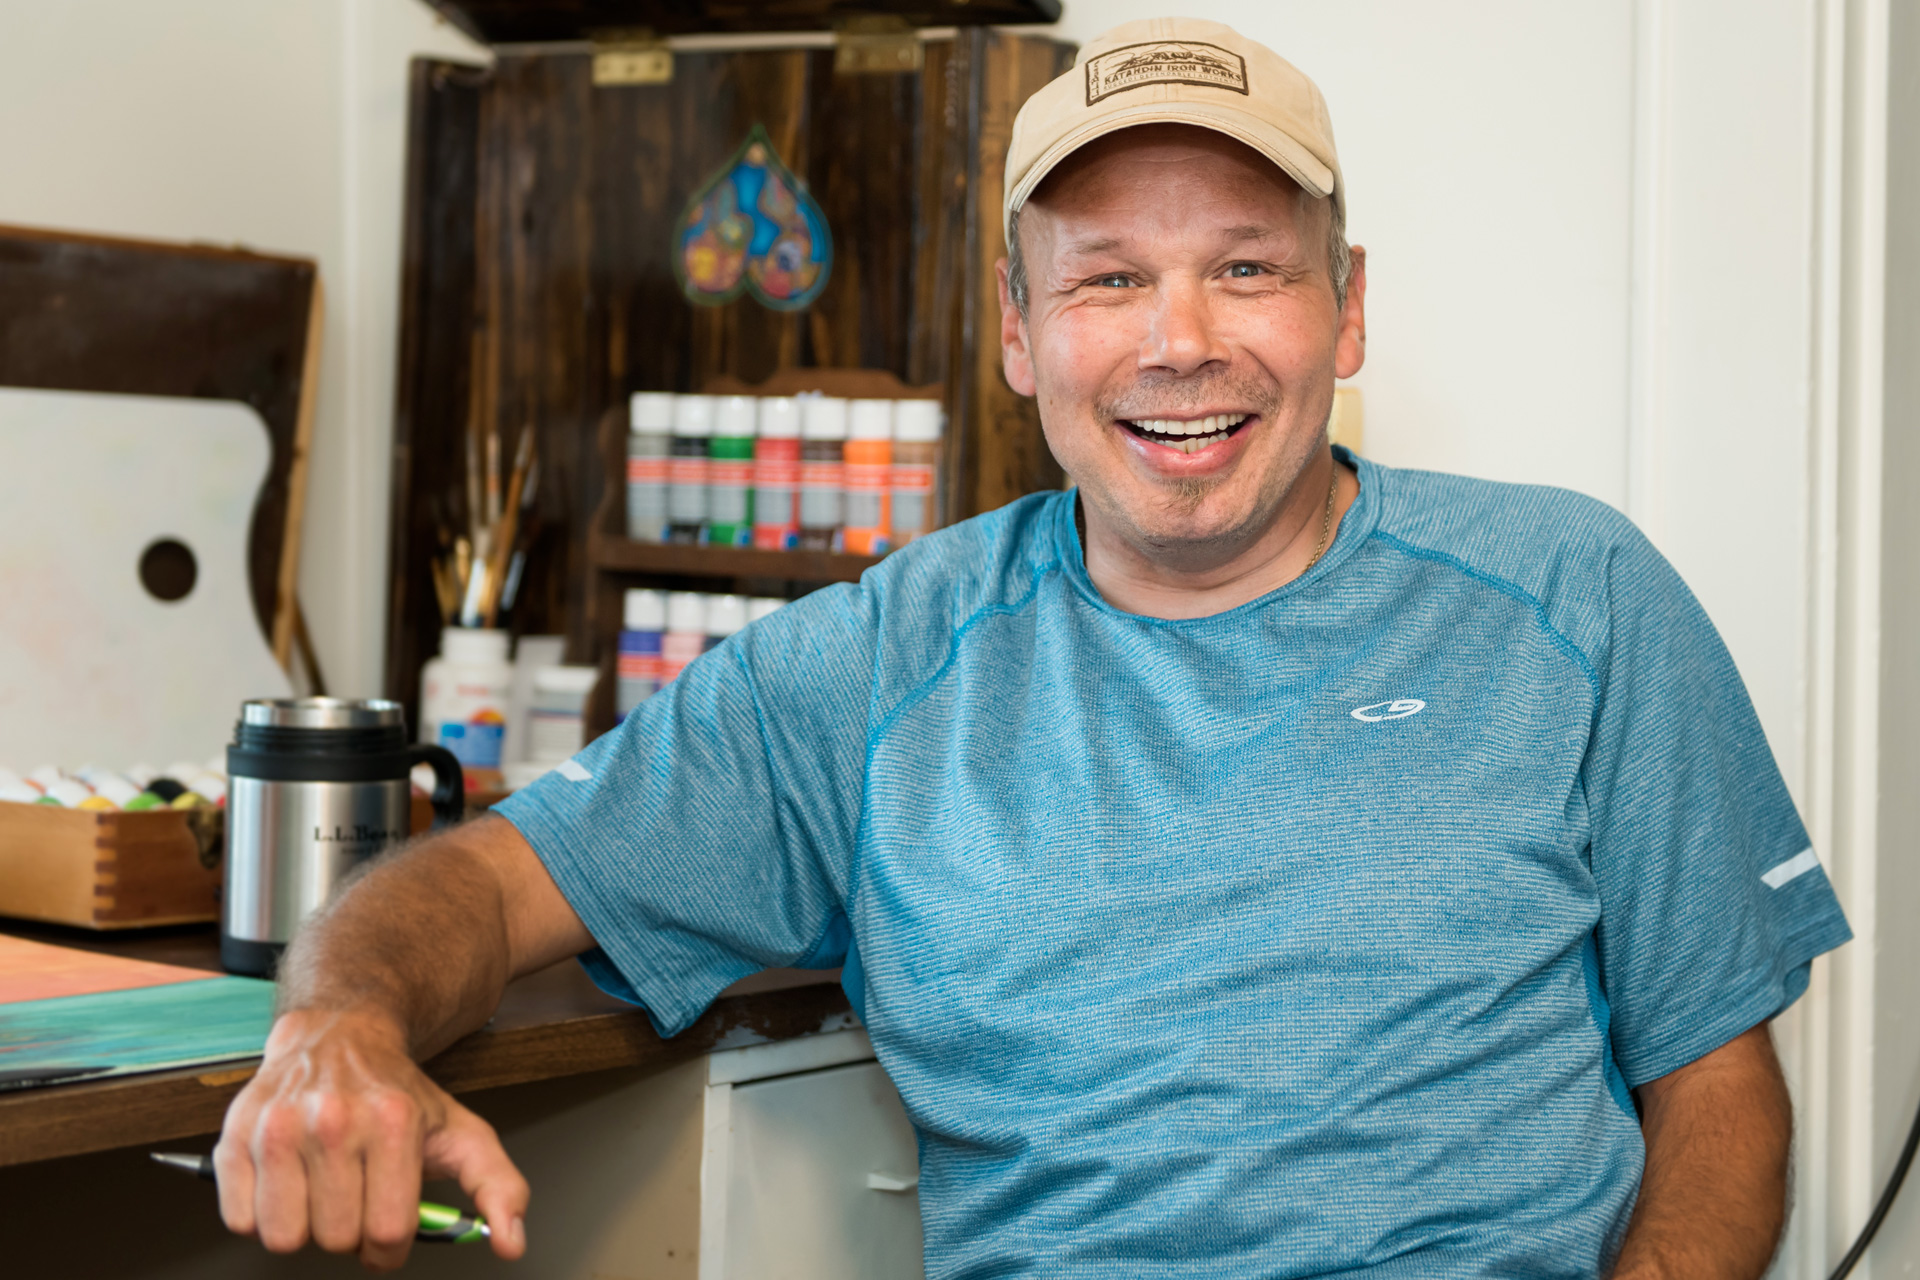 Man in cap leans on a desk, a set of paints behind him